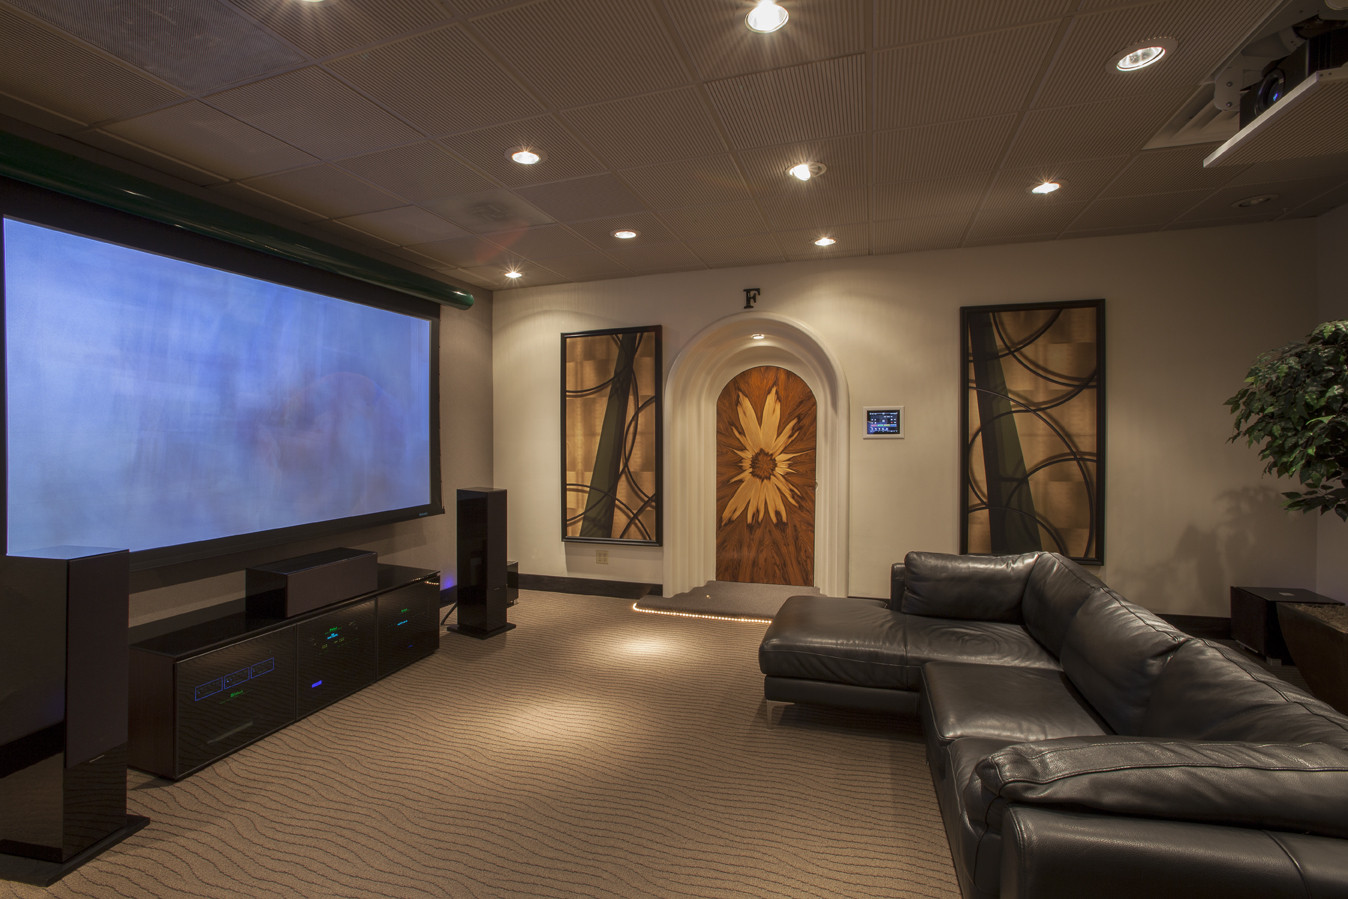 Comfortable Living Roomfor Movie Watching Awesome Living Room theater Ideas with fortable Black